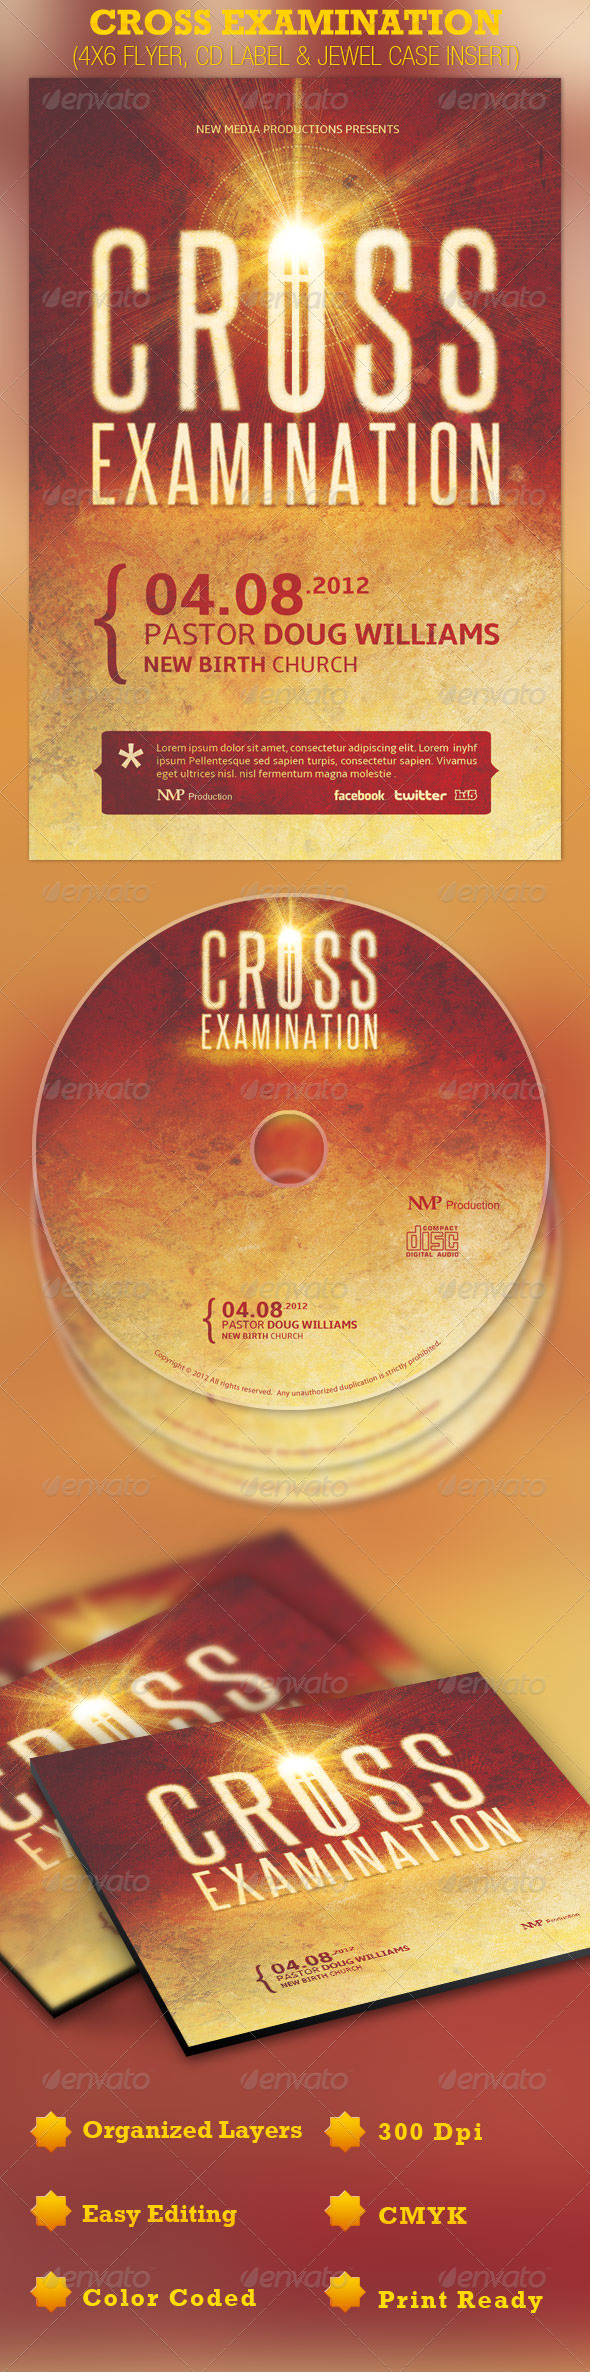 GraphicRiver Cross Examination Flyer CD and Jewel Case 1863731